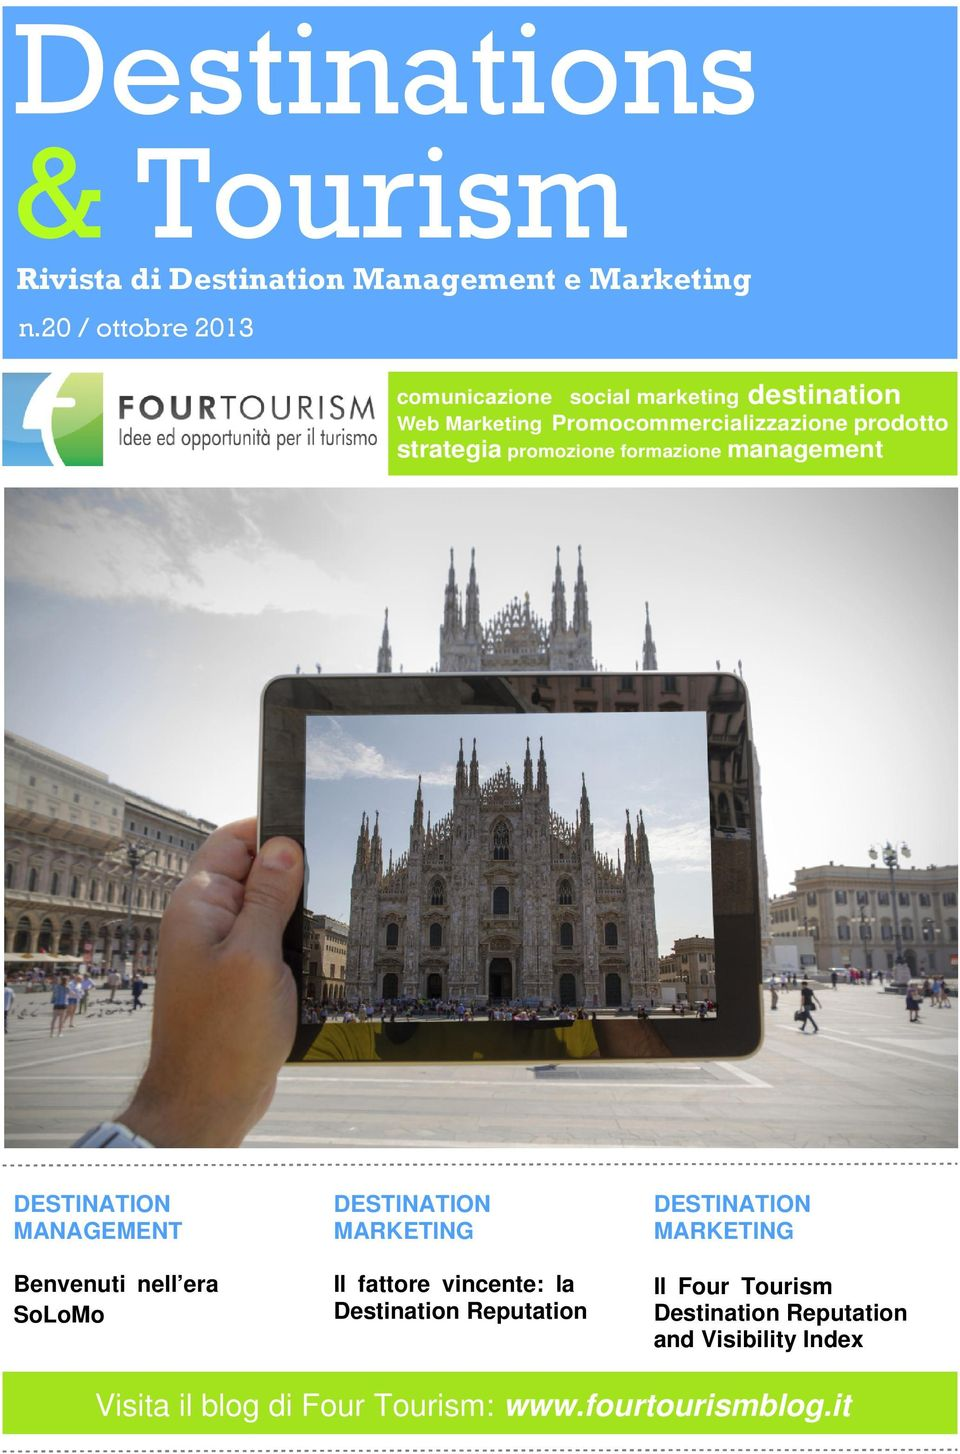 tourism destination management Designed for tourism destination managers, marketers, developers, business owners and planners who want to accelerate their careers in the tourism industry, this.